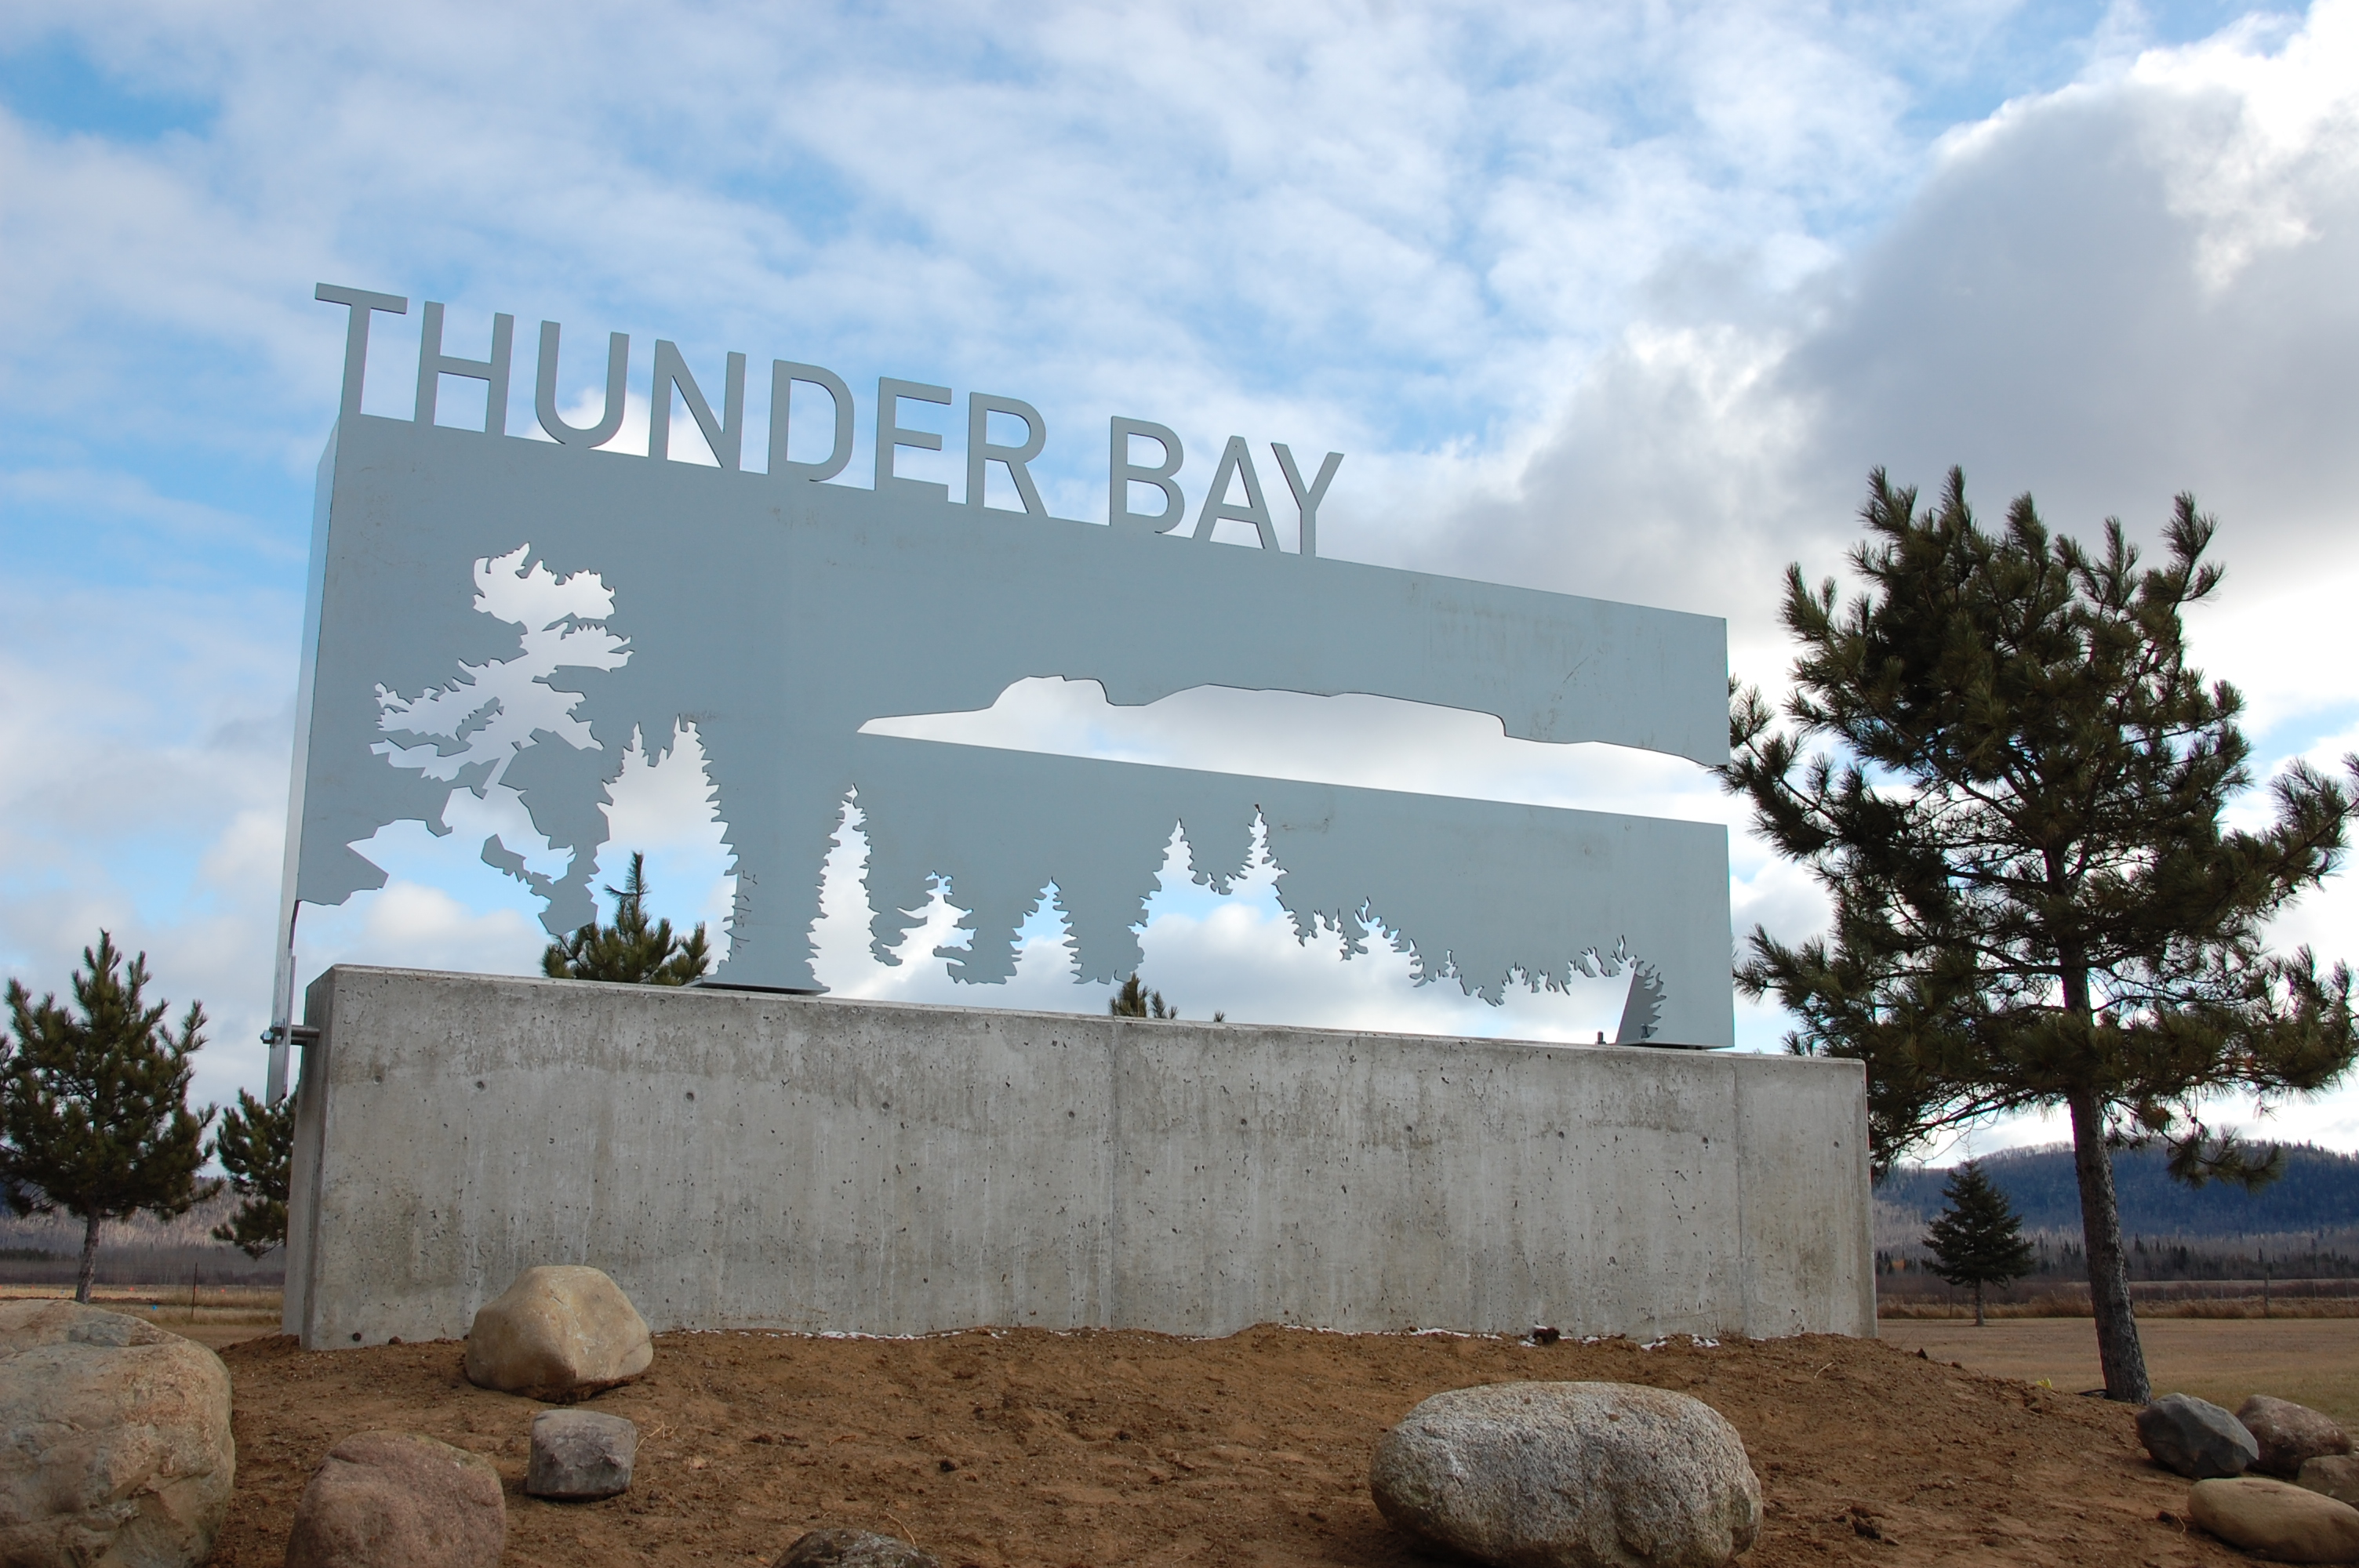 City Art Collection - City of Thunder Bay